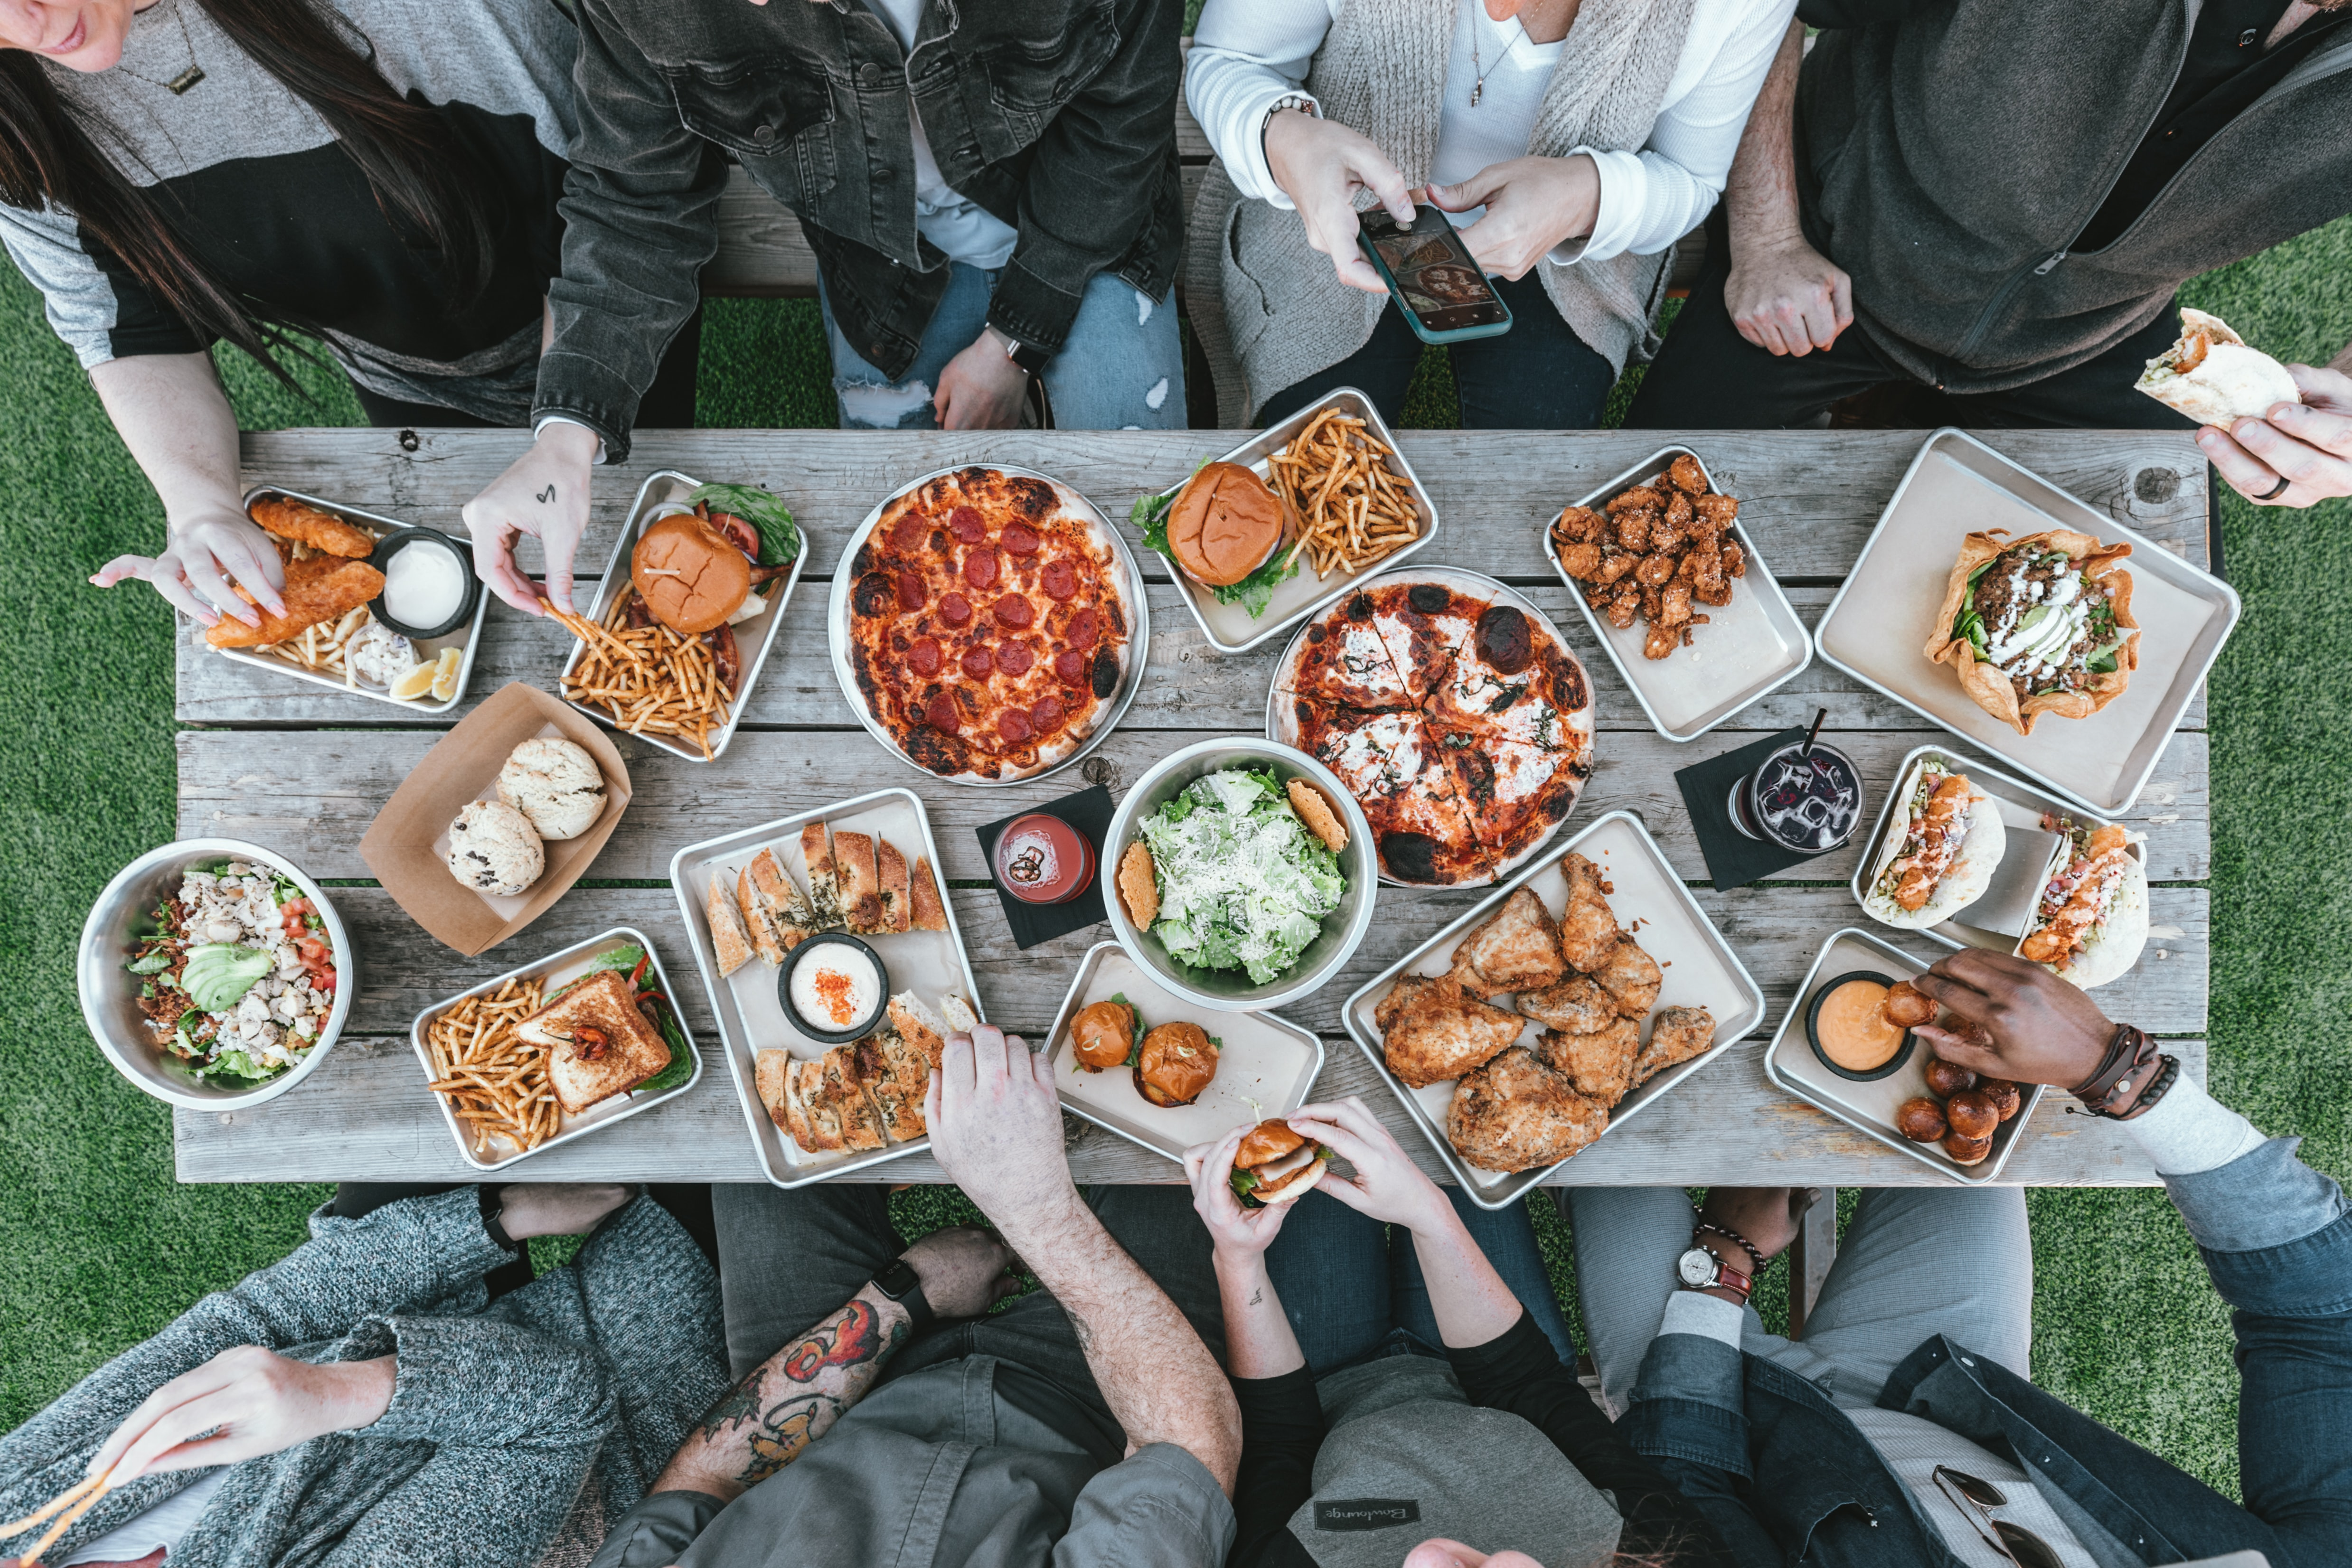 How Can Restaurants Reduce Food Waste? With Waste Management Planning